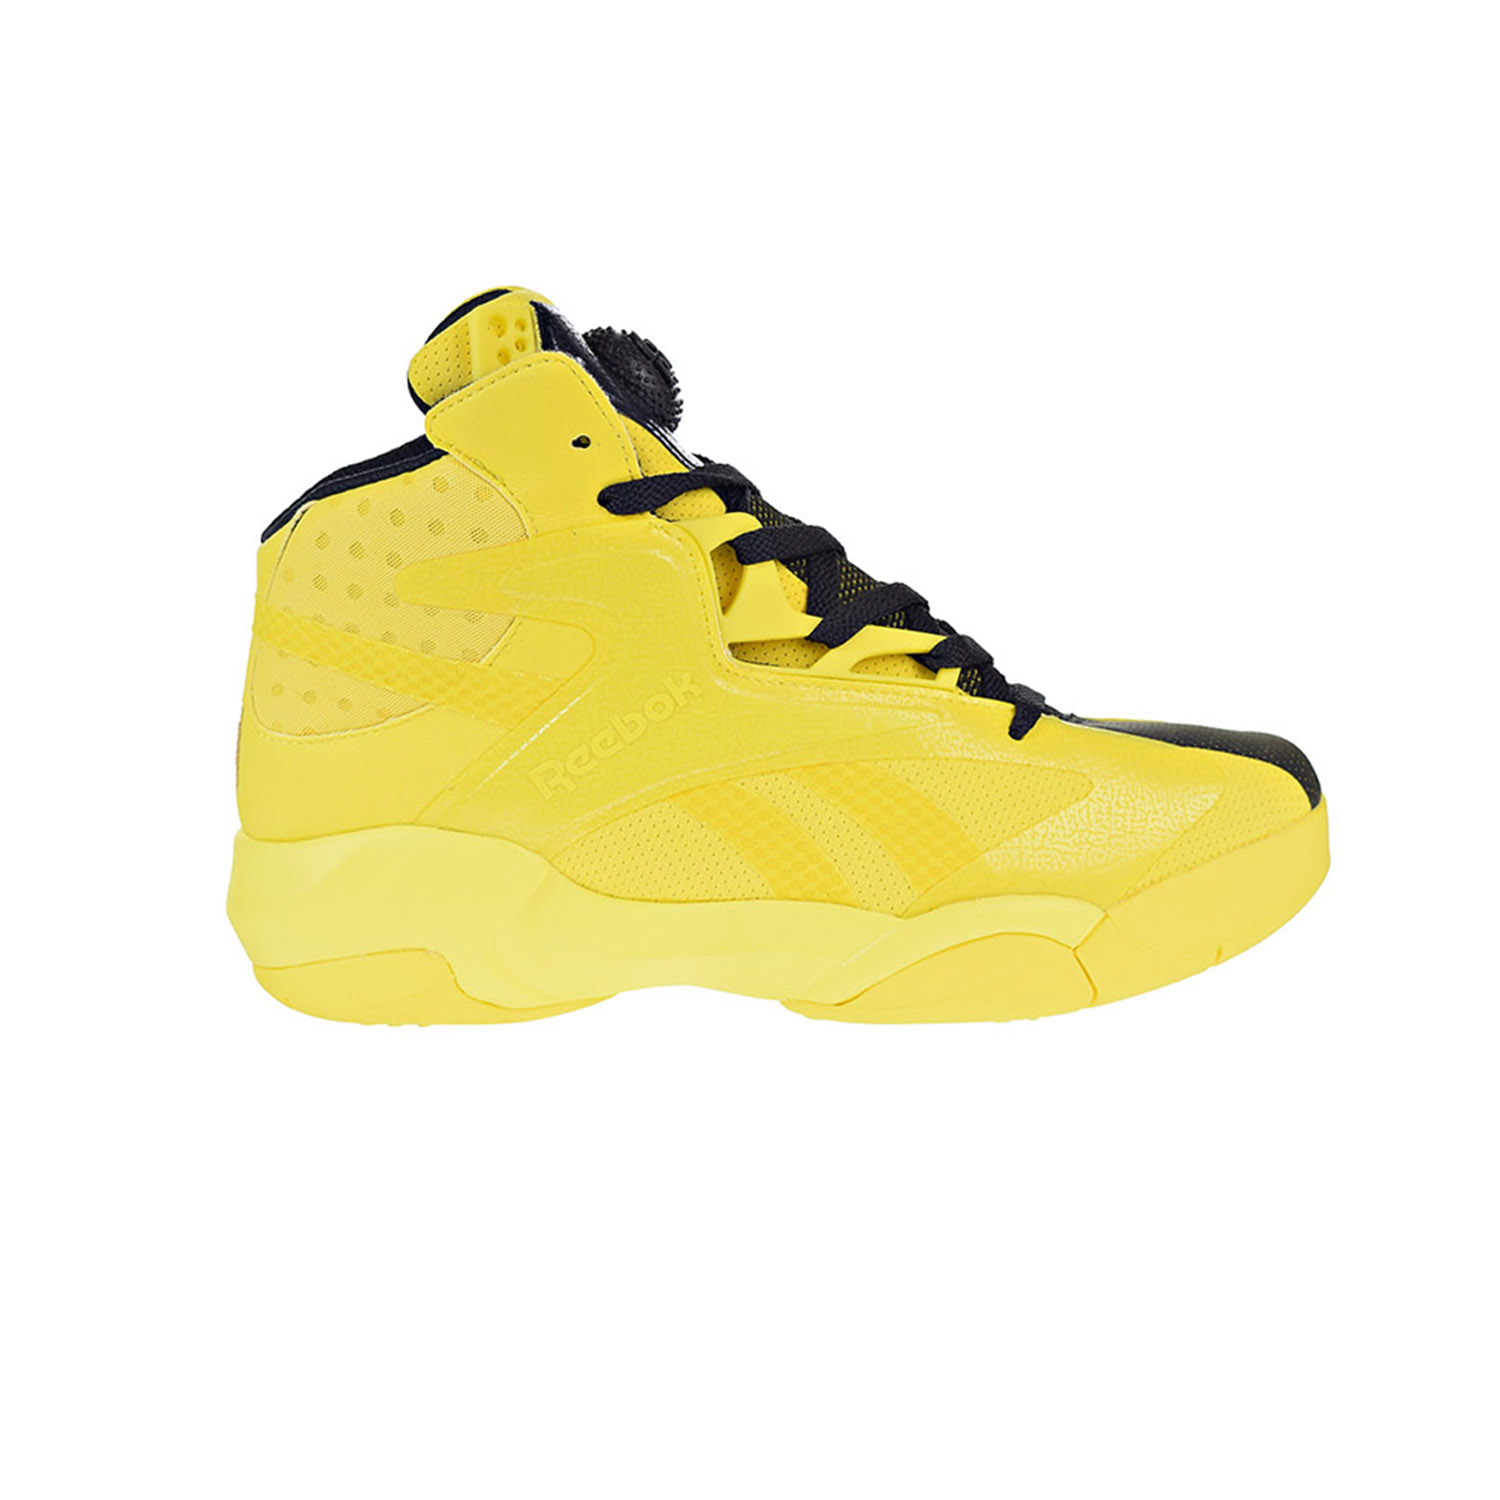 Basketball Shoes Yellow Spark-Black